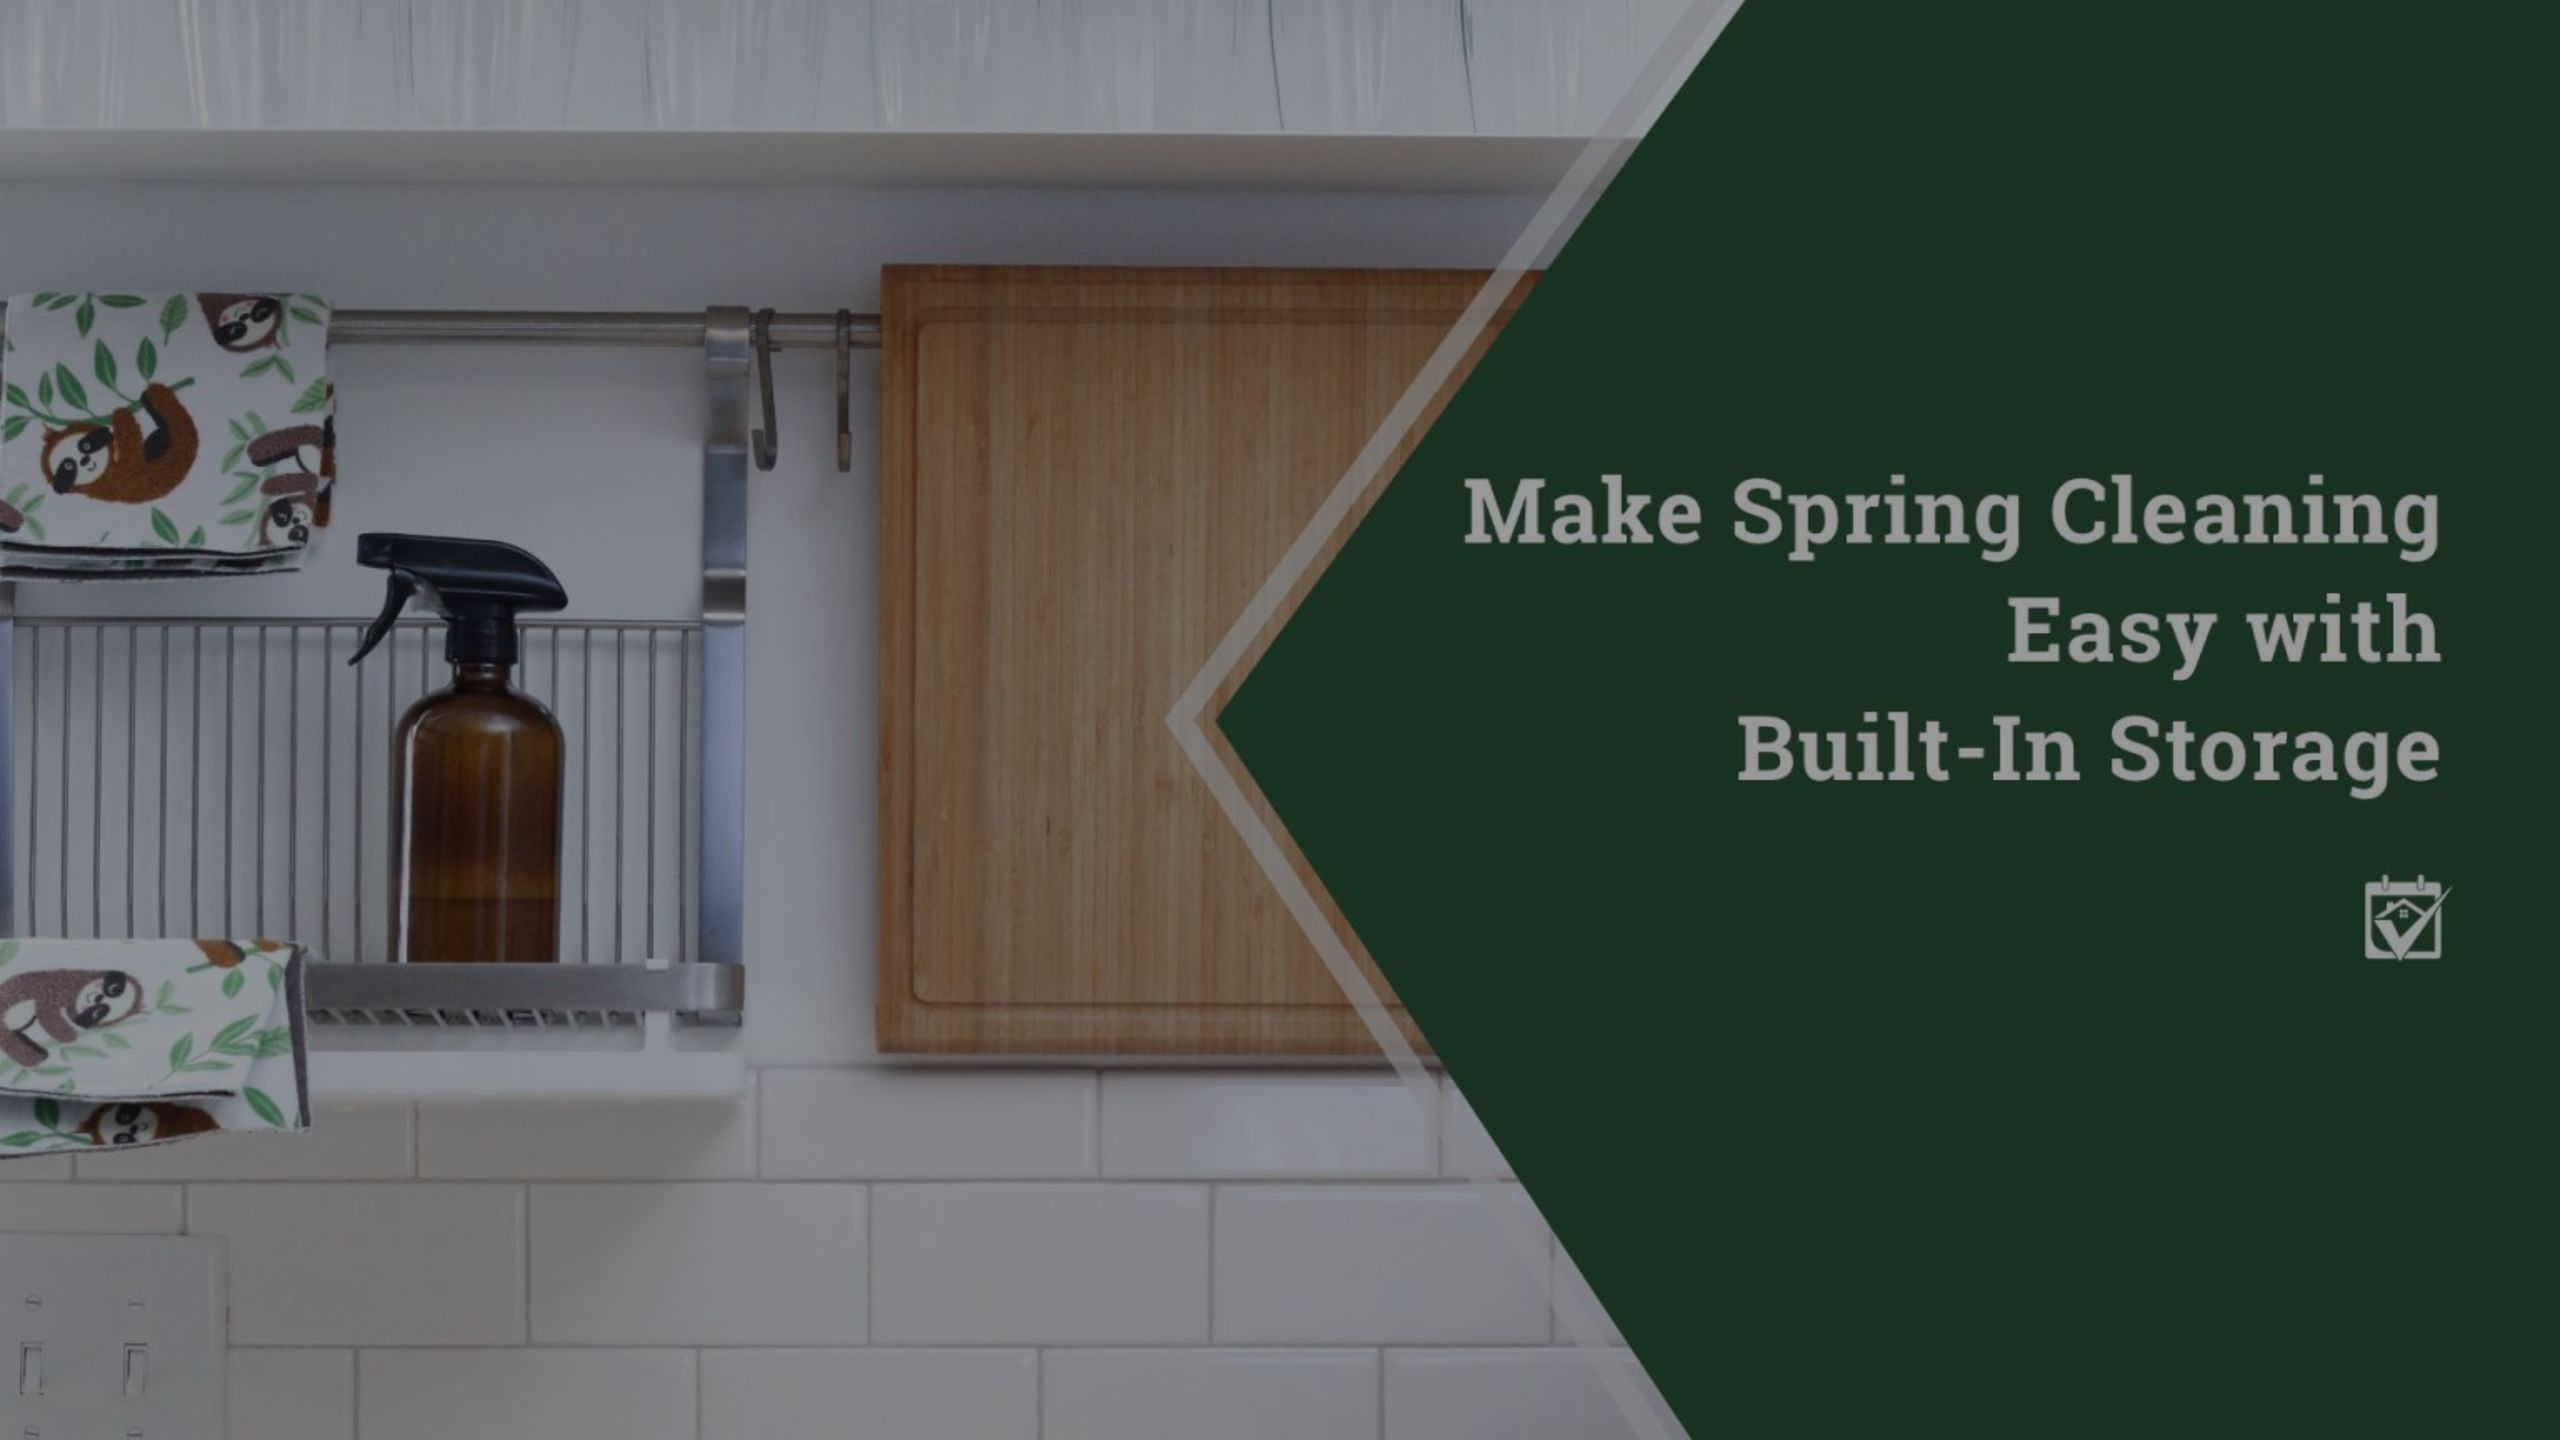 Make Spring Cleaning Easy with Built-In Storage